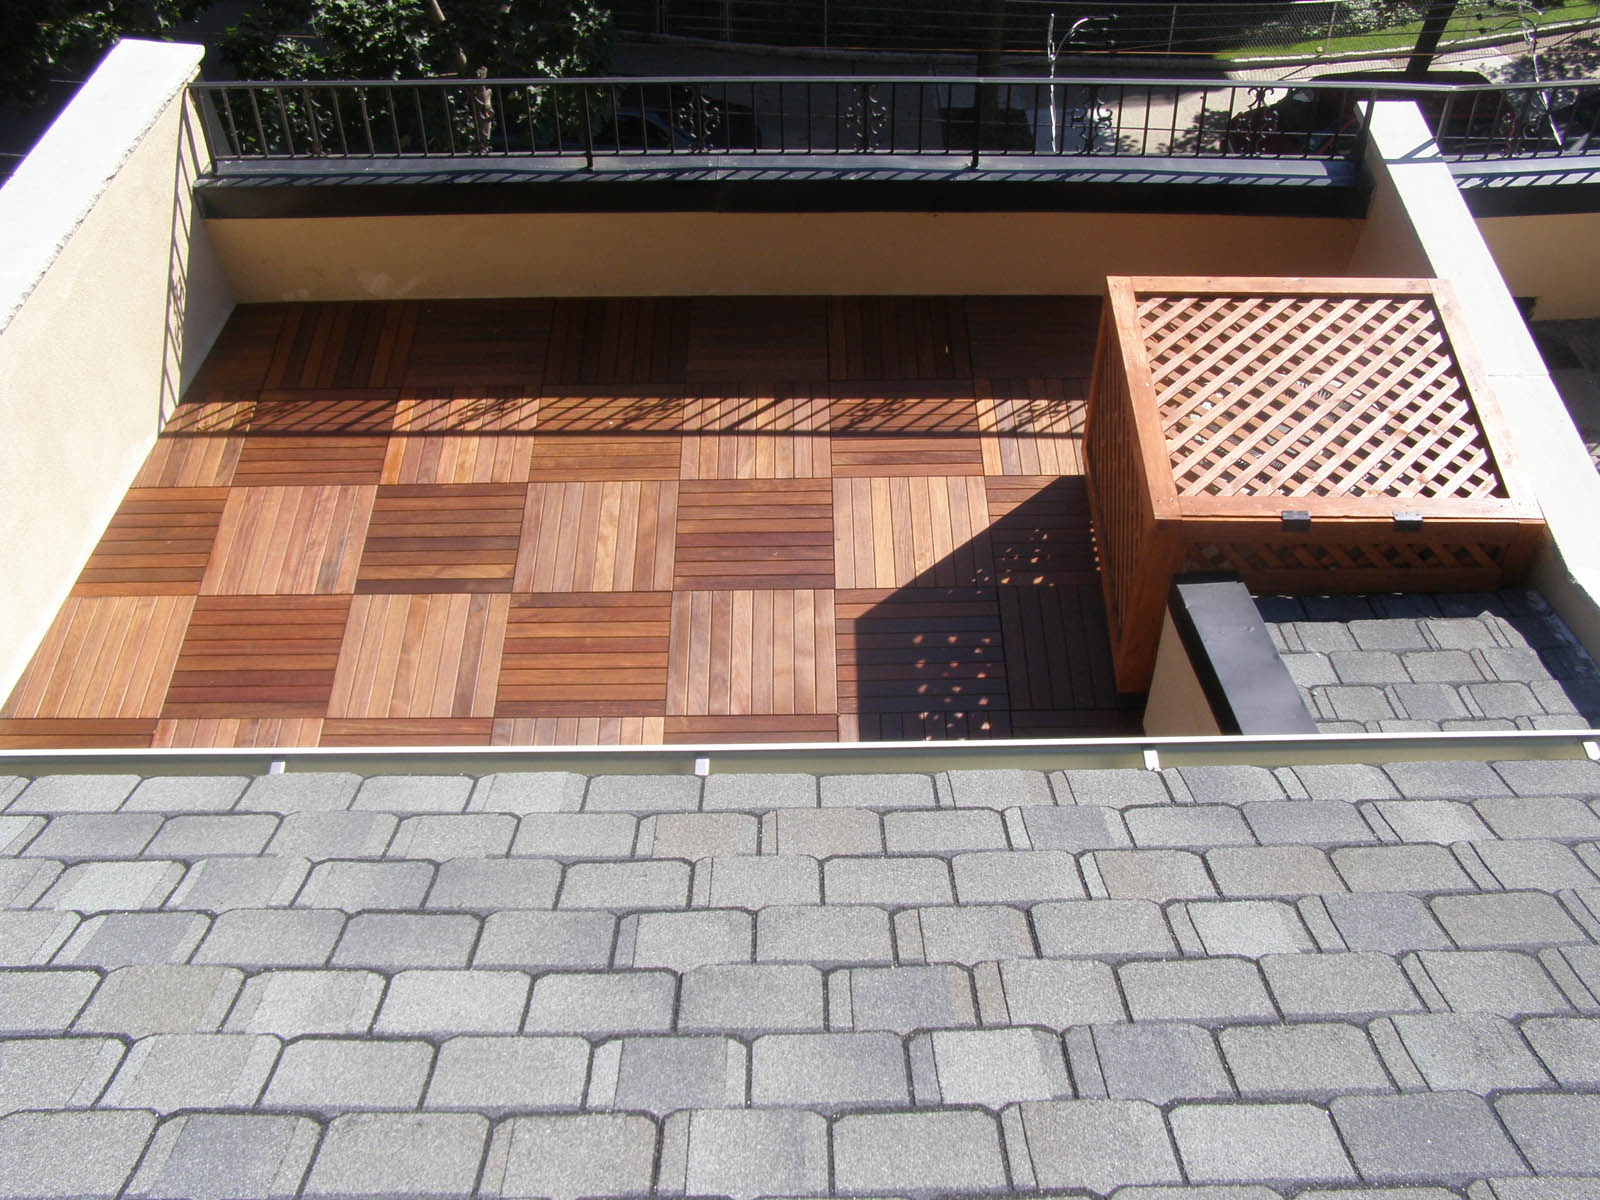 Ipe Decks Are The Most Weather Resistant | All Decked Out on roof deck flooring, roof deck signs, roof deck vinyl, roof deck pedestals, roof deck floor cover, roof trim tiles, roof deck pavers, roof deck stucco, roof deck fireplaces, roof deck wood, roof floor tiles, roof deck pads, roof under deck system, roof deck flower pots, roof deck fabric, roof deck details, roof deck waterproofing systems, family room tiles, decking tiles, log tiles,